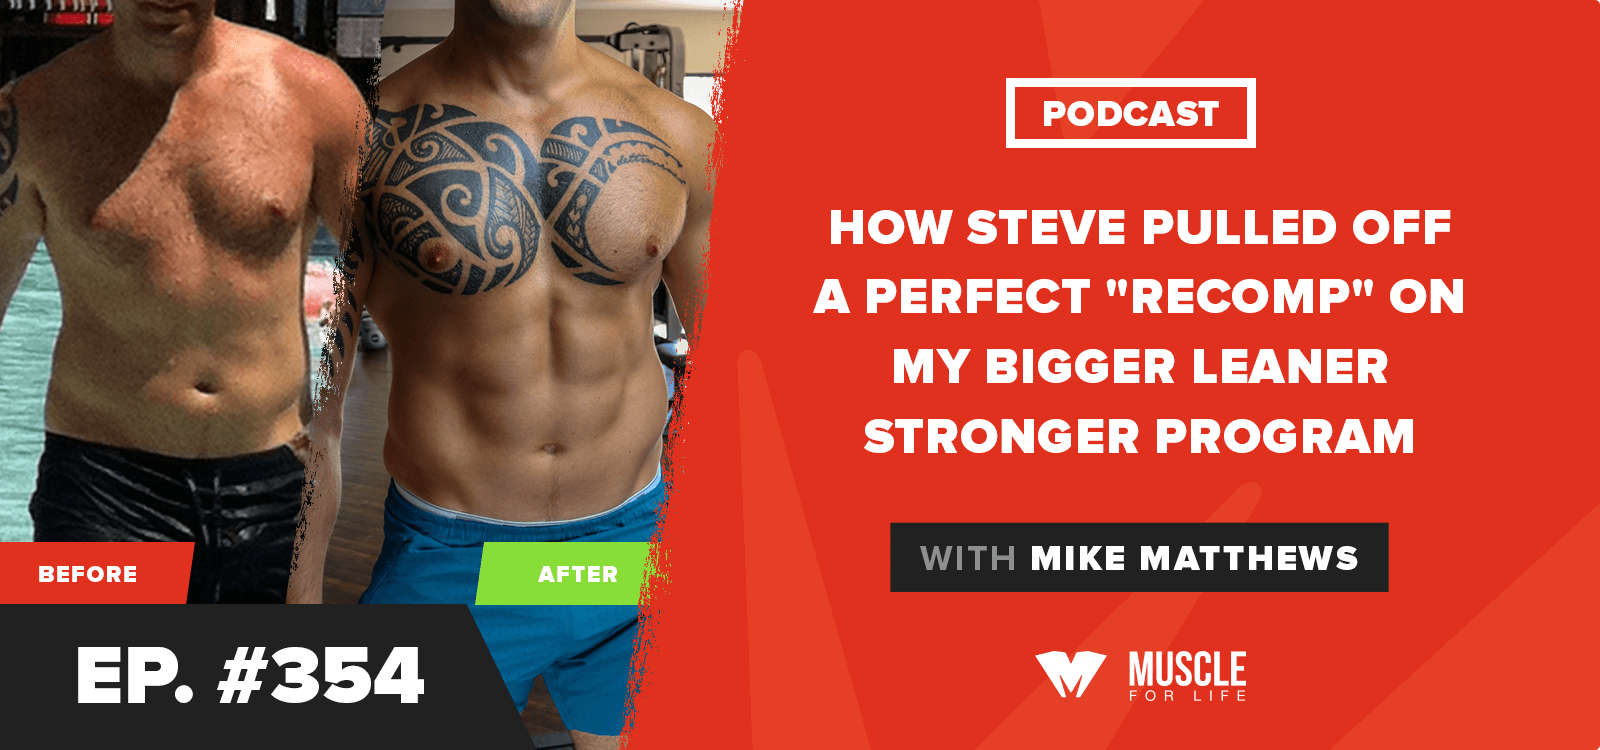 """How Steve Pulled Off a Perfect """"Recomp"""" on my Bigger Leaner Stronger Program"""